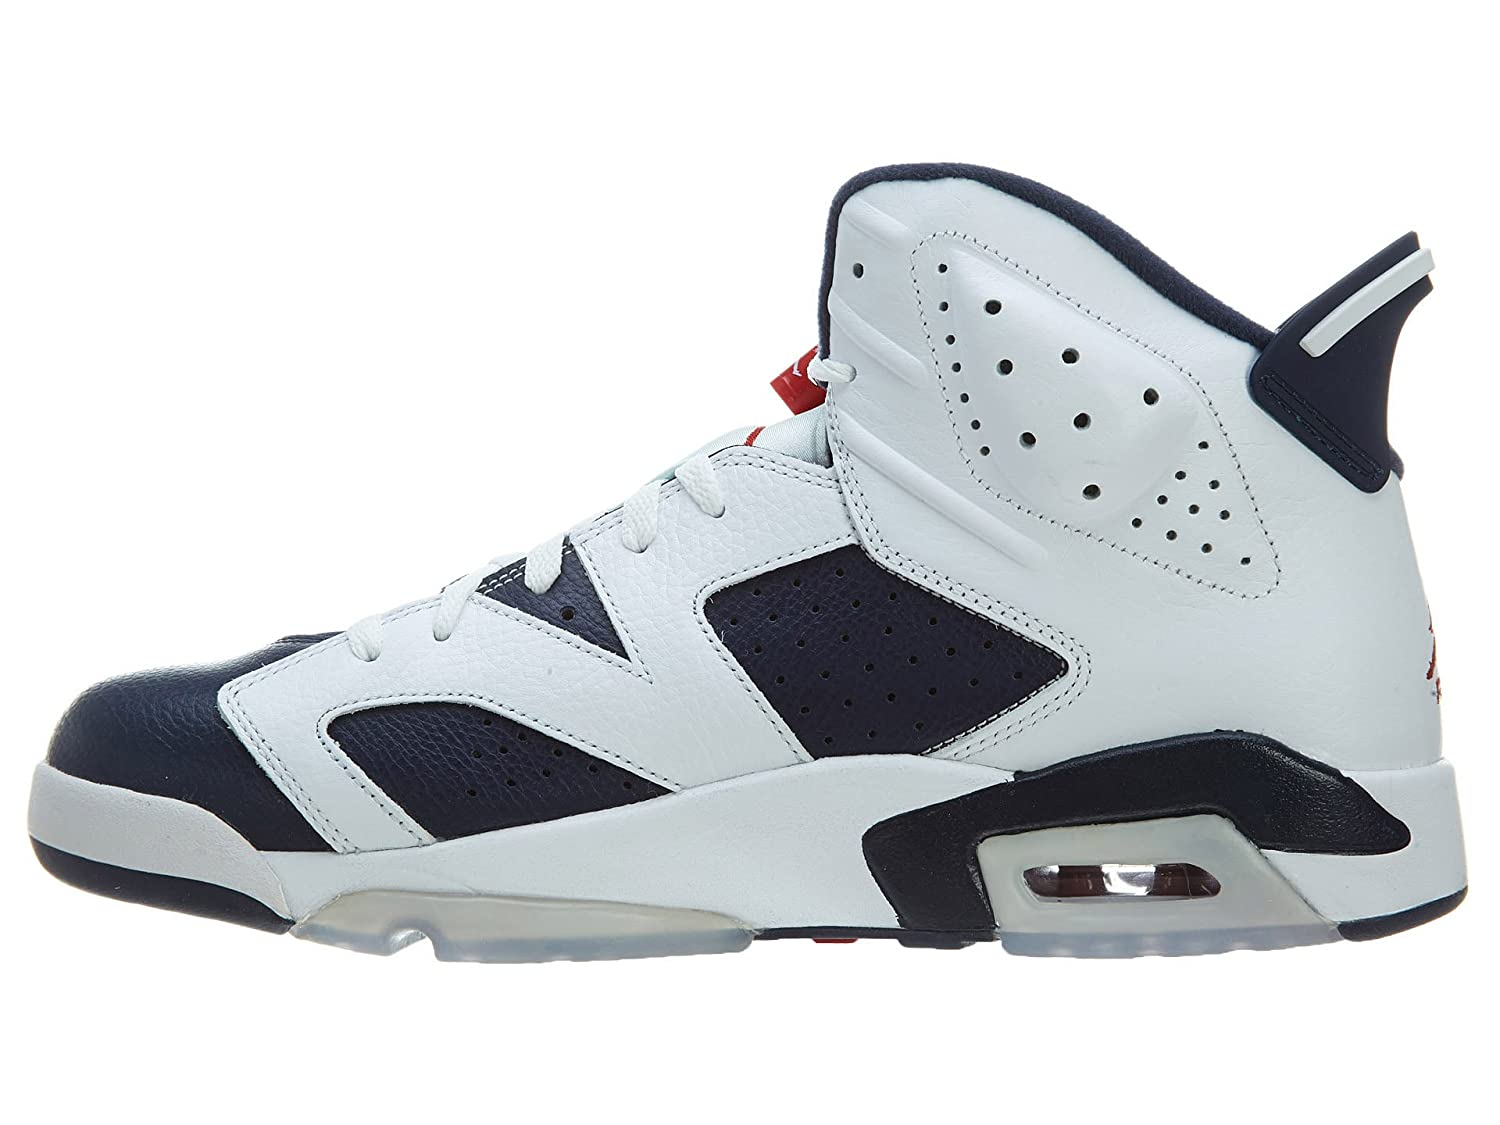 new product c7d0b 0e9e6 Amazon.com   Nike Mens Air Jordan 6 Retro Olympic White Midnight Navy-Varsity  Red Leather Basketball Shoes Size 9.5   Fashion Sneakers